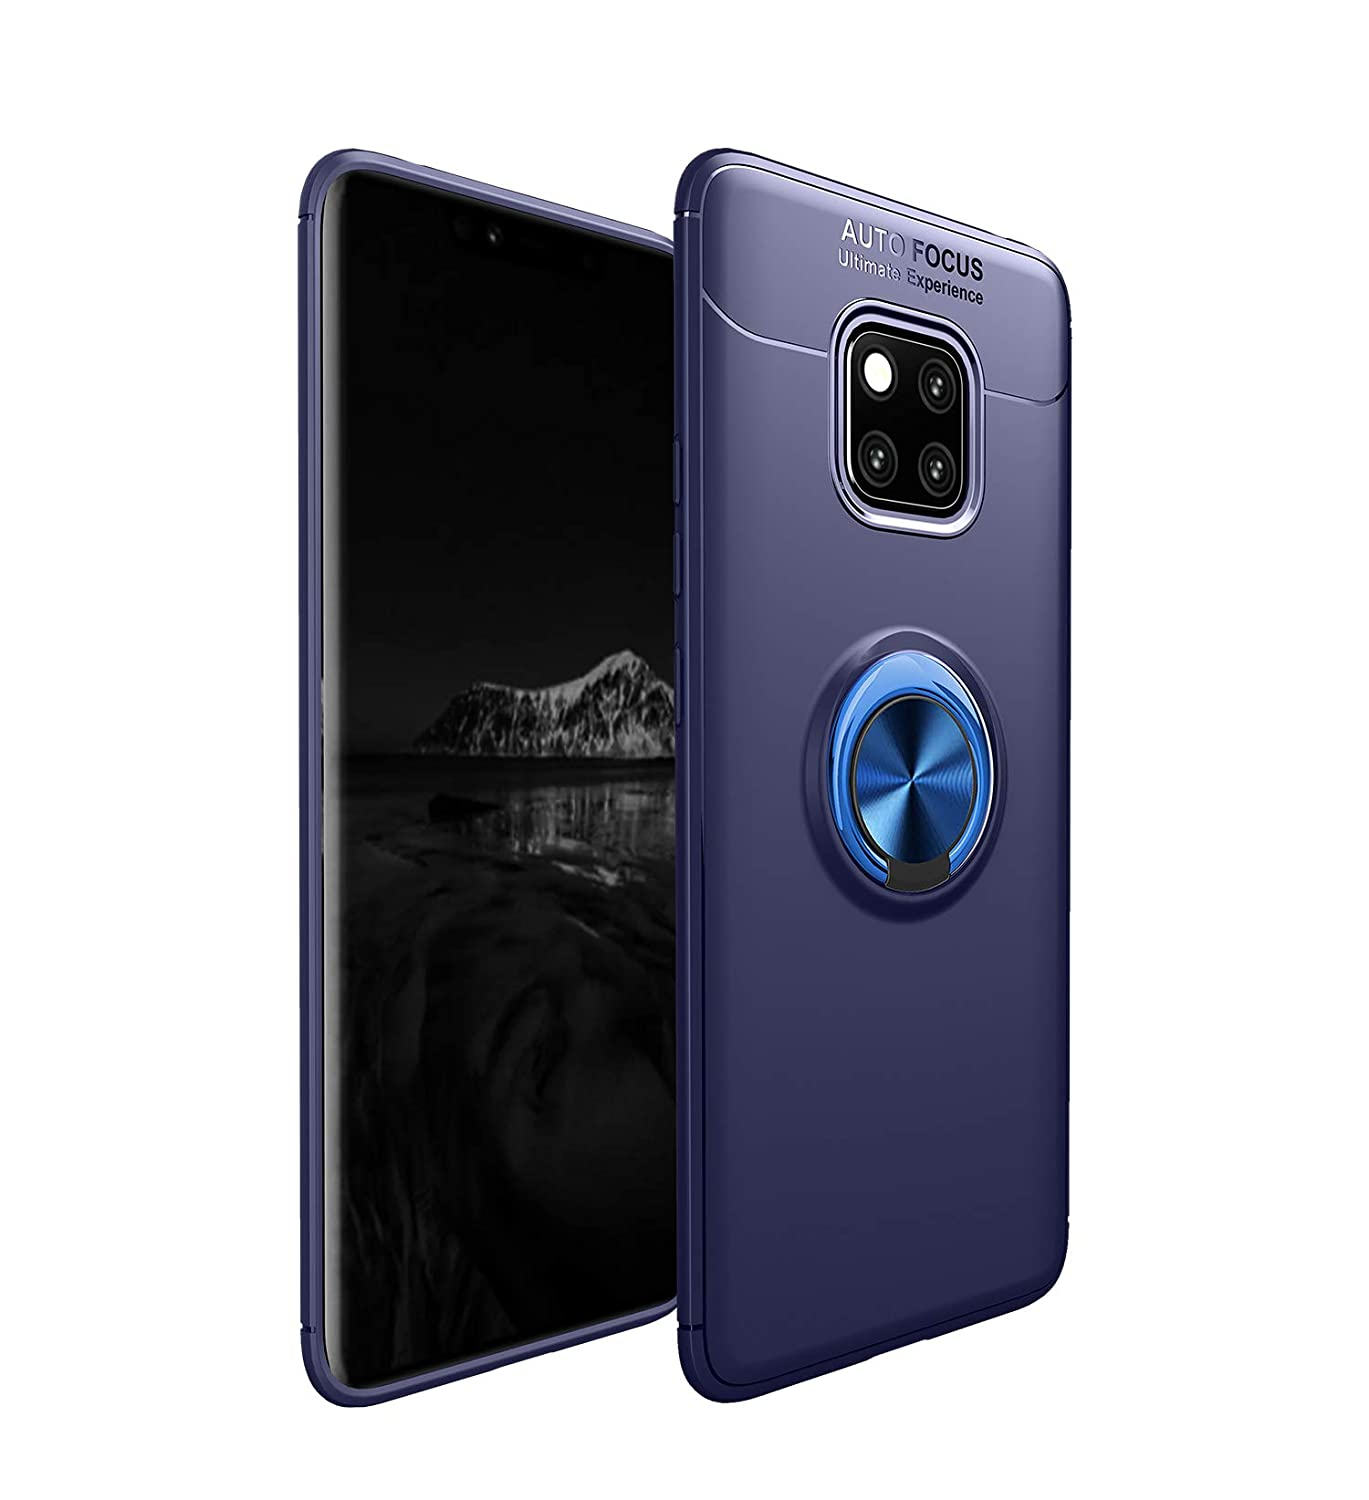 Case for Huawei Mate 20 Pro Taiaiping Soft TPU Material Suitable for Automotive Magnet Brackets Invisible Ring Bracket Multi-Function Protective Shell ...